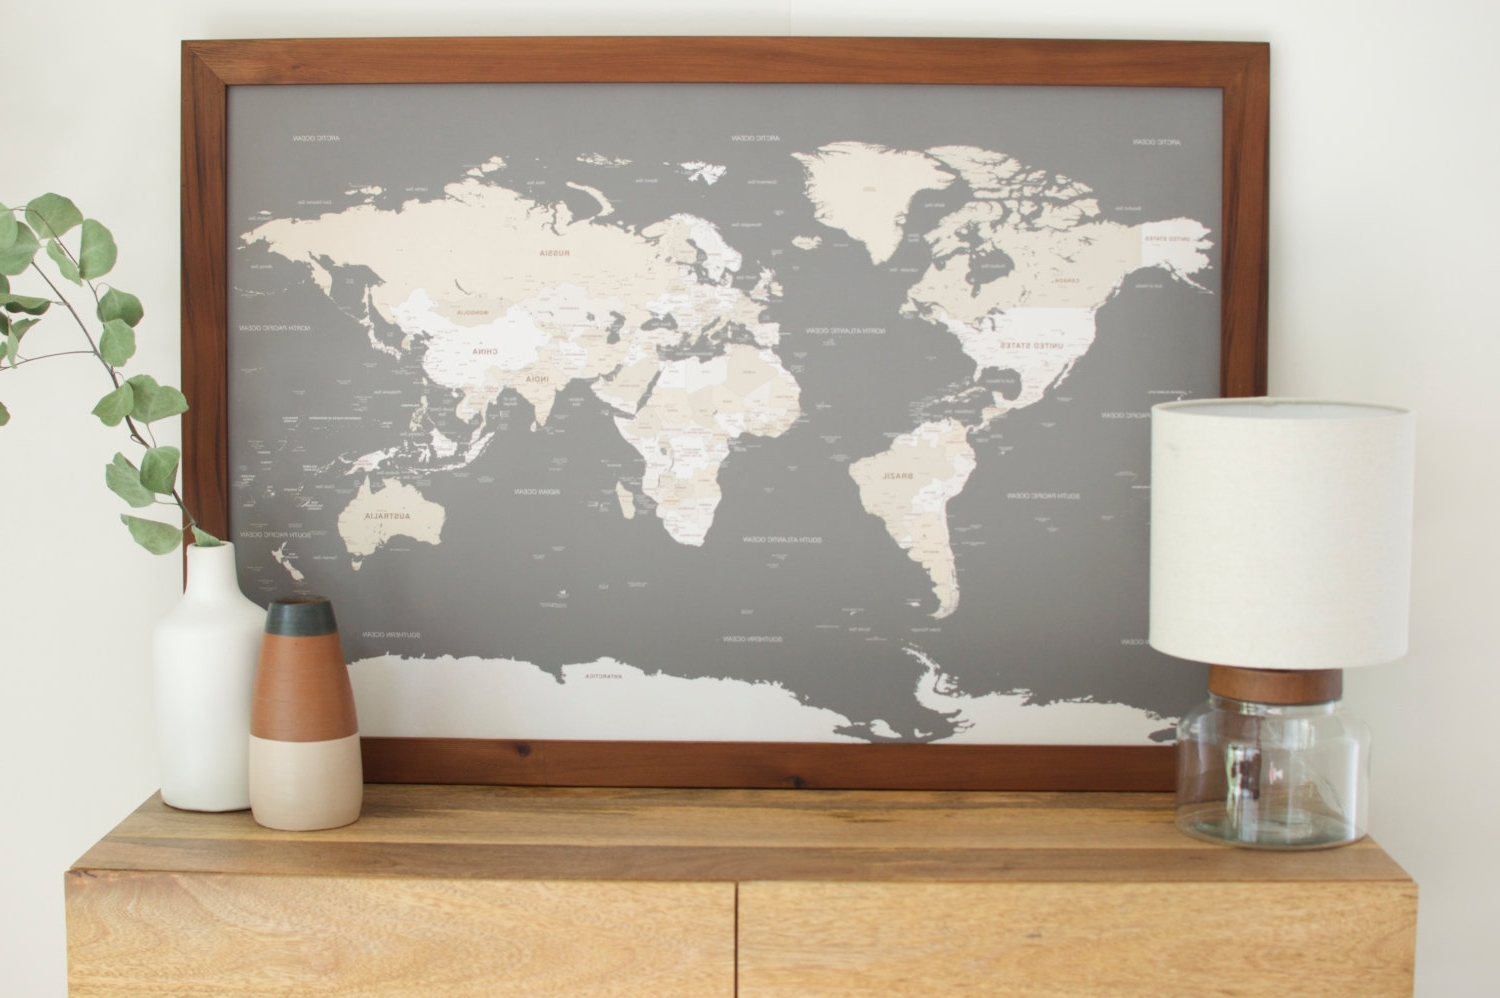 World Map Wall Art Framed With Trendy Push Pin Travel Map World Wall Art And Framed Maps Madriver Me New (Gallery 10 of 20)